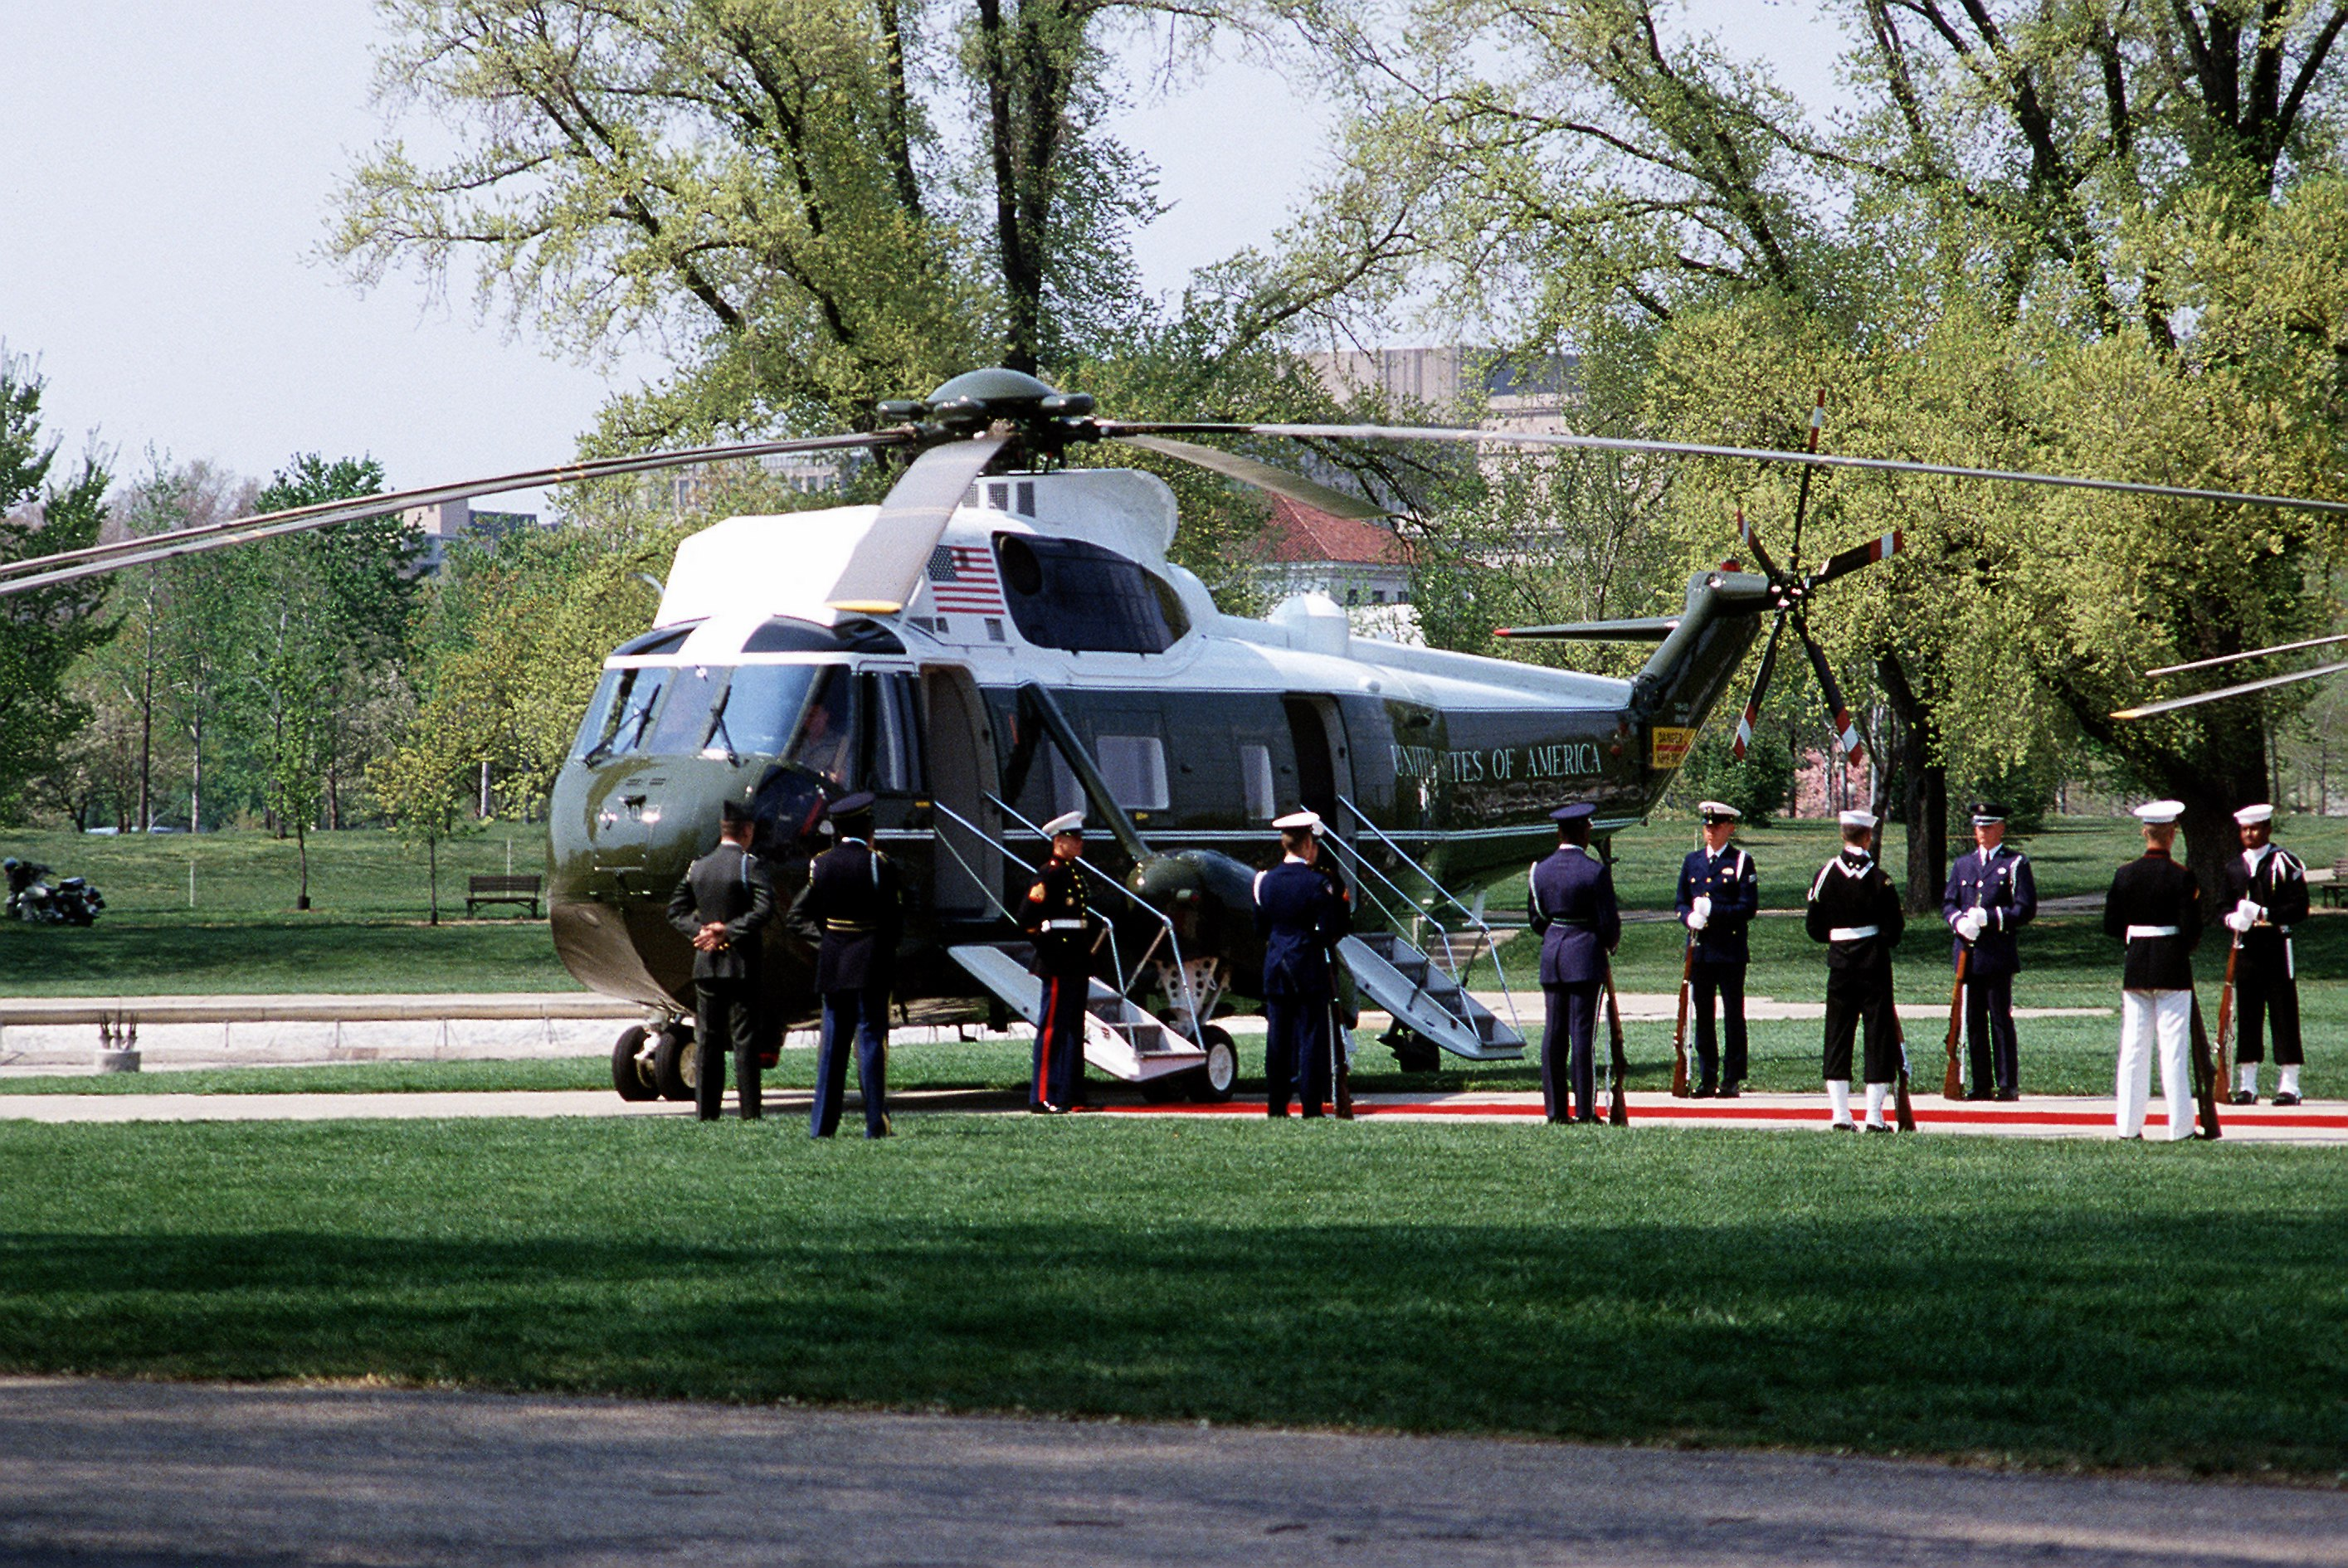 File:VH-3D Marine One at the Mall DC 1985.jpg - Wikimedia ...